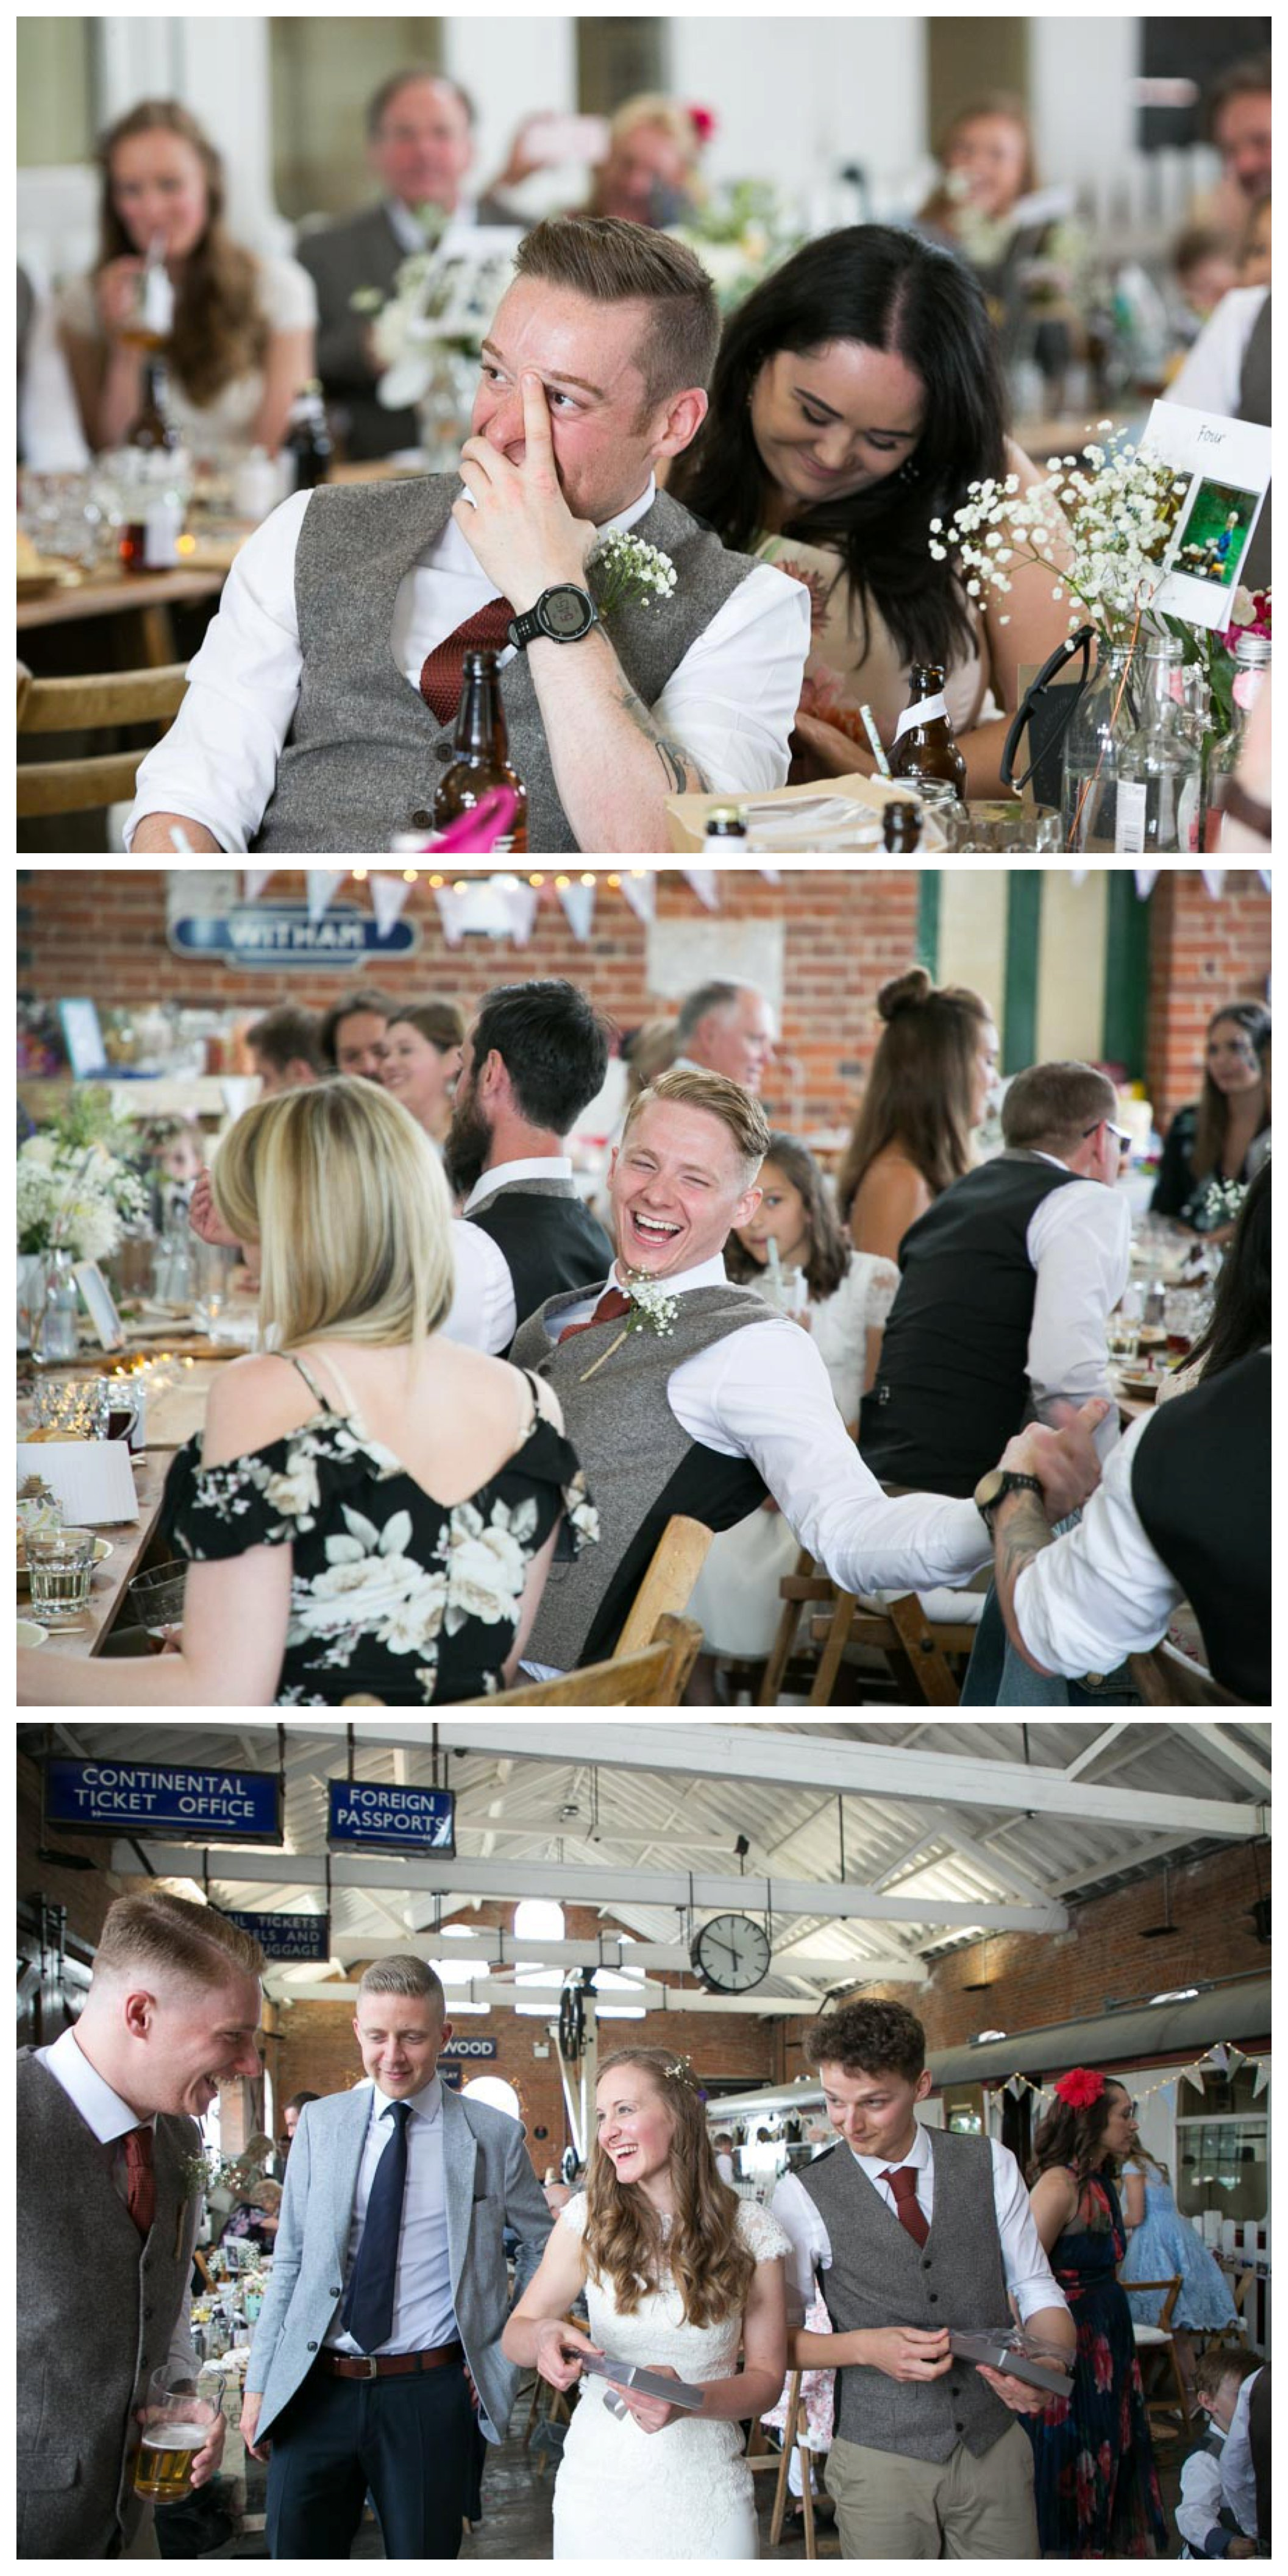 happy faces of guests during best man speeches at wedding, bride and groom dishing up wedding cake